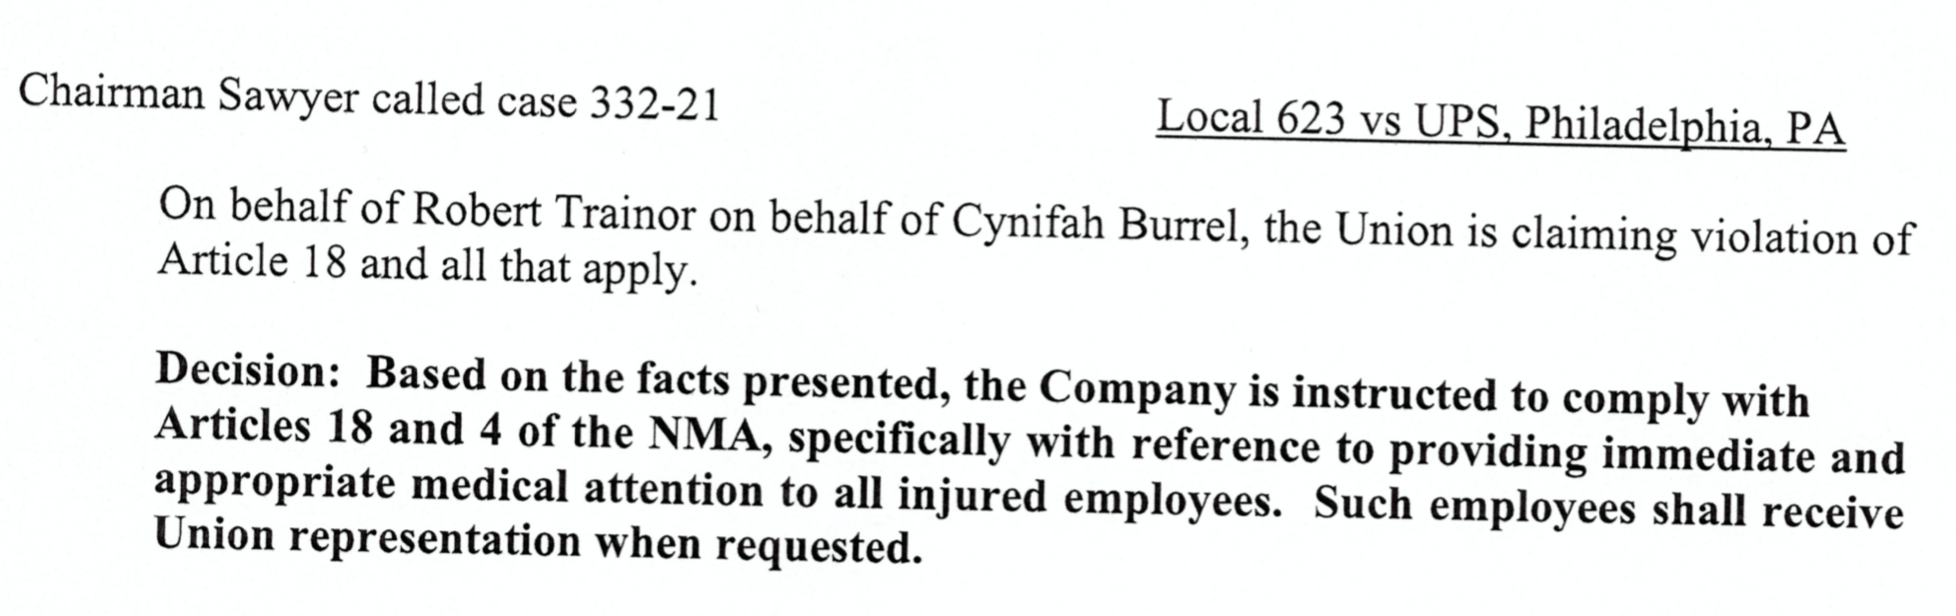 Decision: Based on the facts presented, the Company is instructed to comply with Articles 18 and 4 of the NMA, specifically with reference to provideing immediate and appropriate medical attention to all injured employees. Such employees shall receive Union representation when requested.